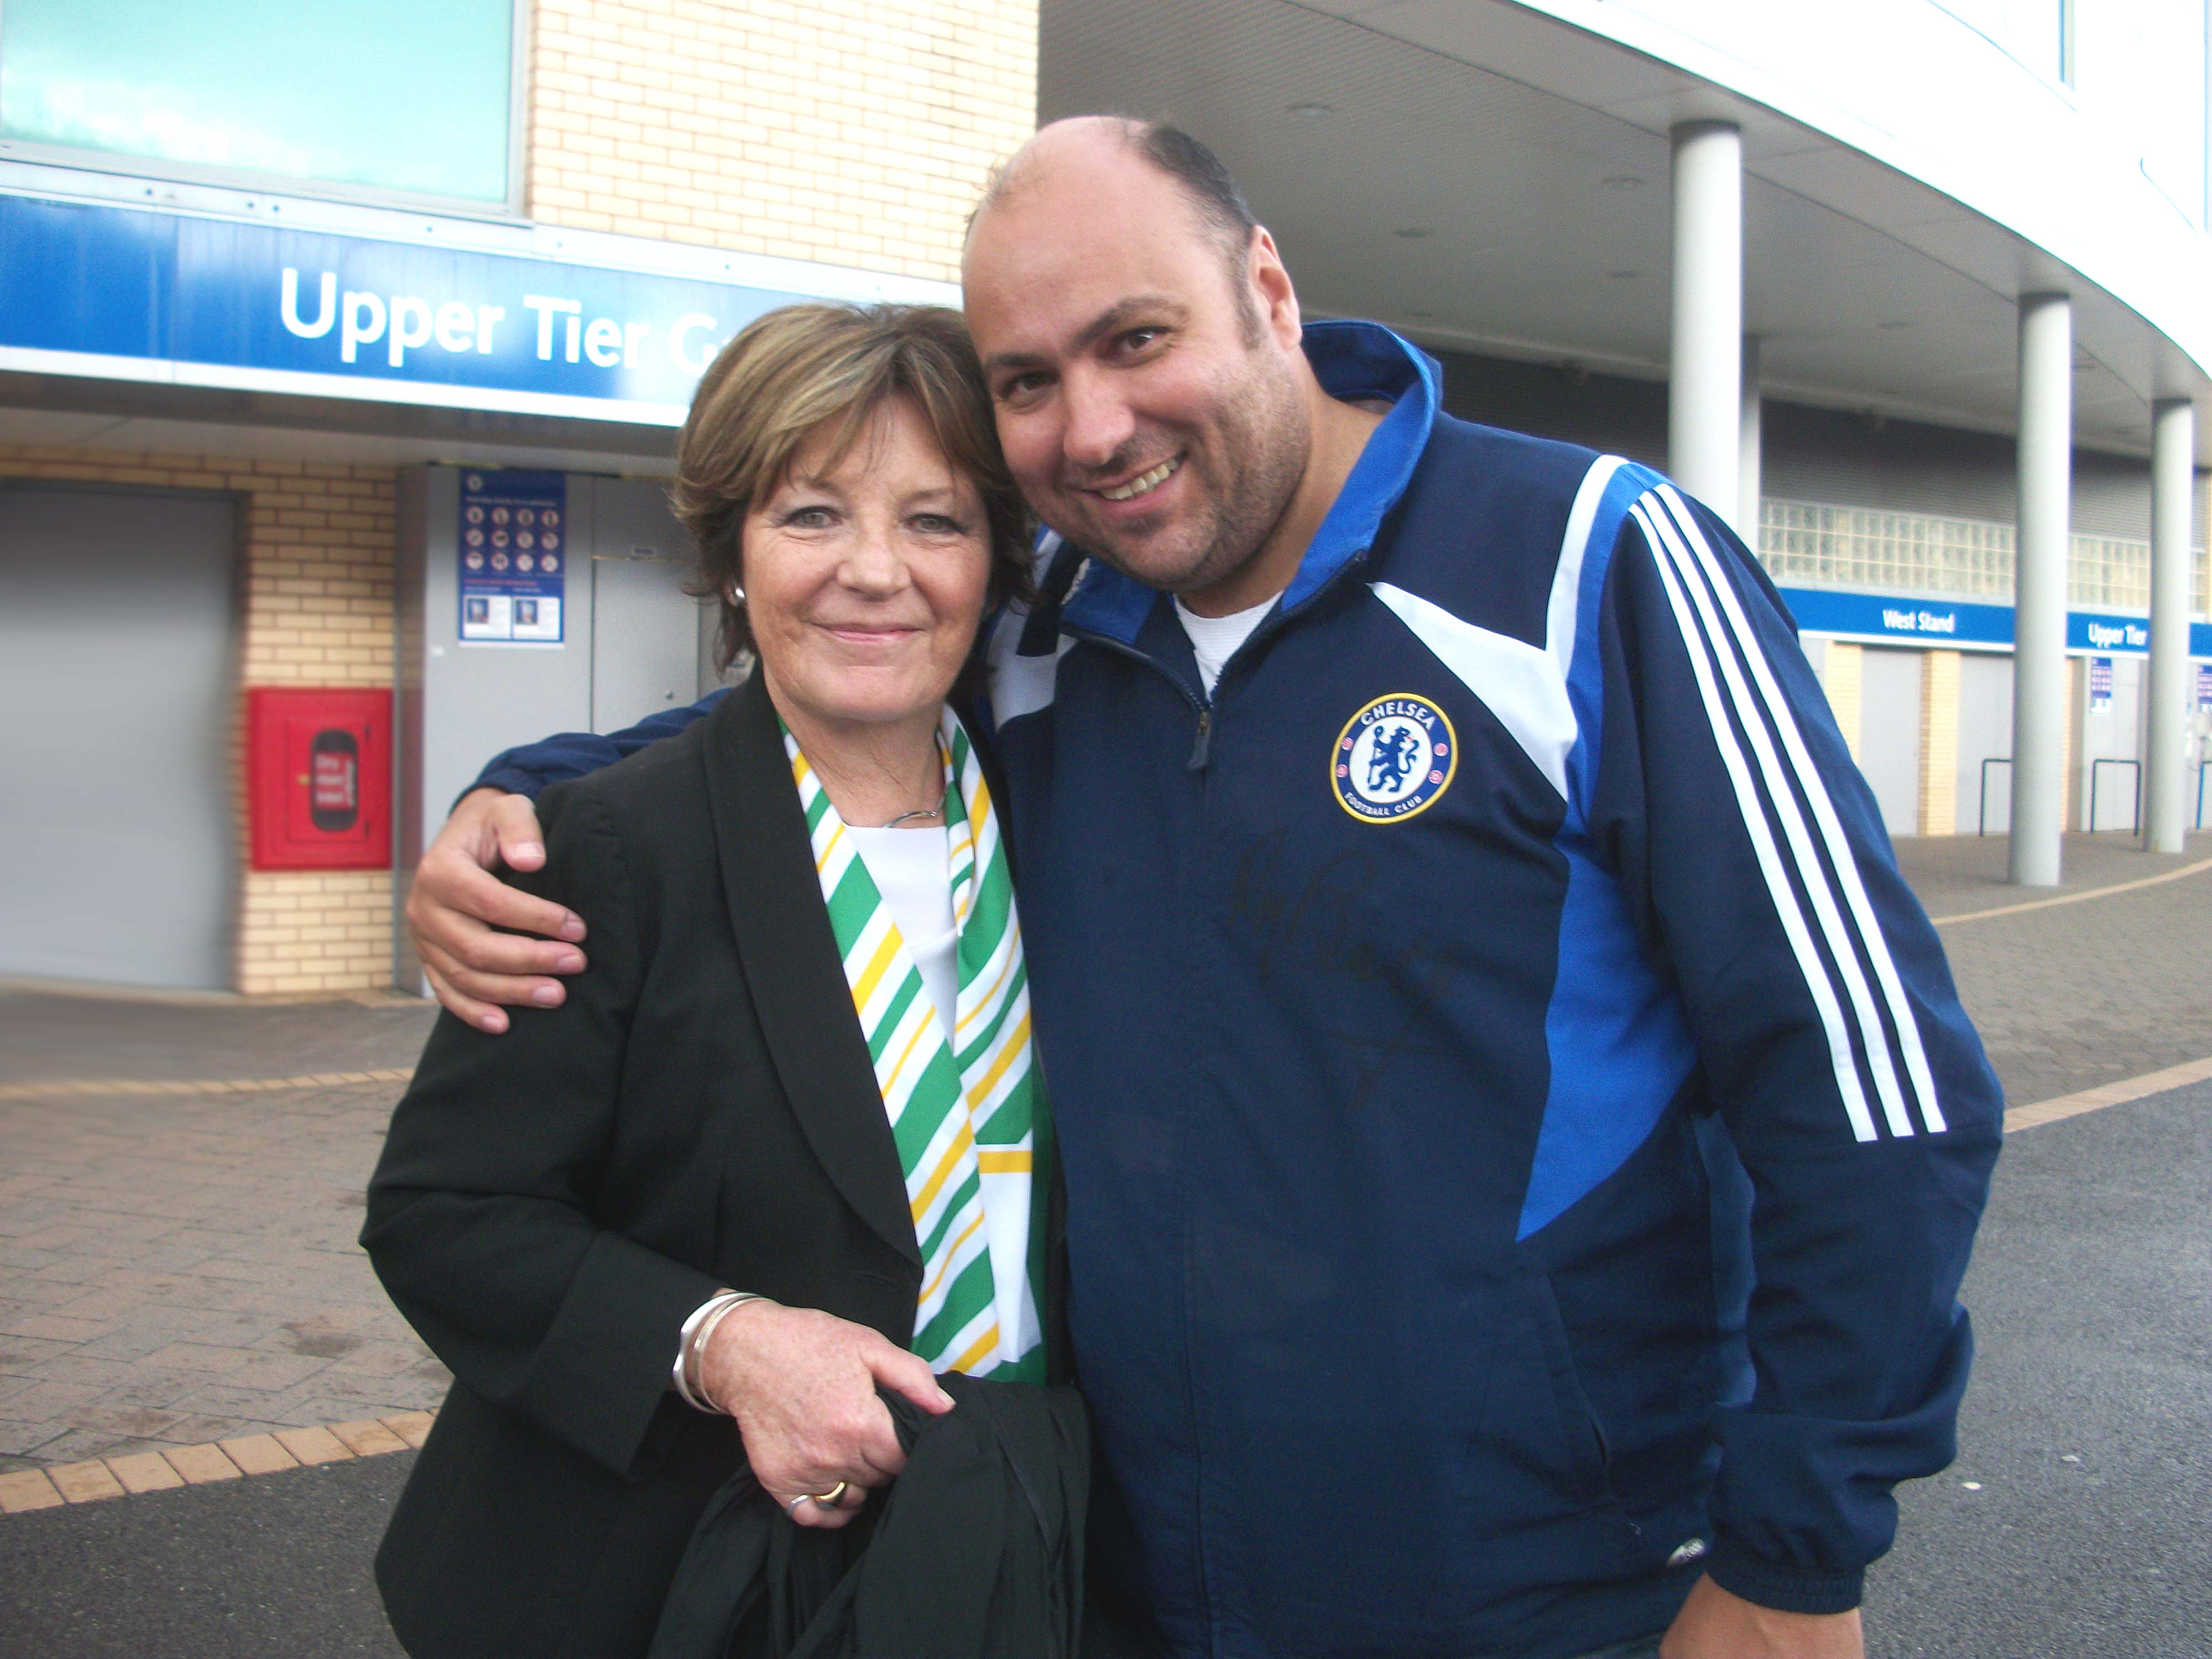 Delia Smith & Dave Sherwood